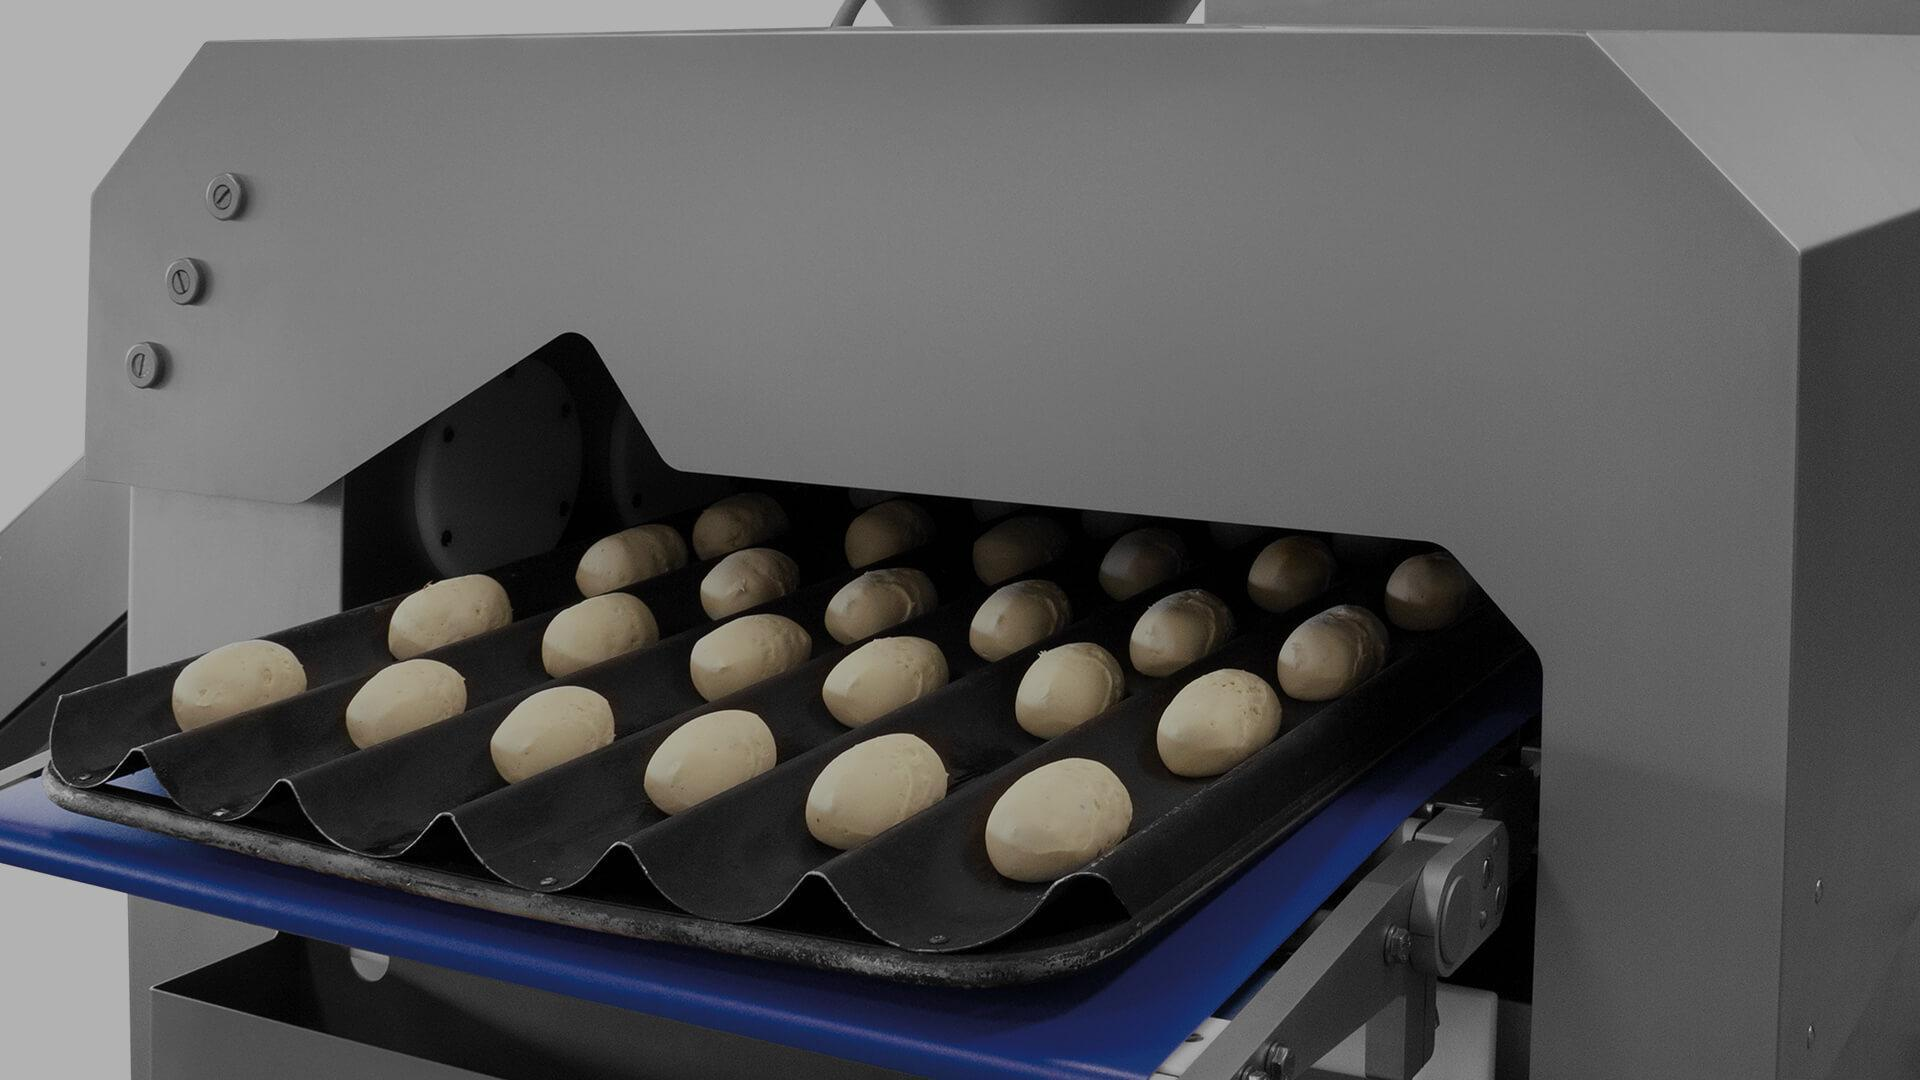 Handtmann Bakery Solutions: Precise, Flexible, Reliable